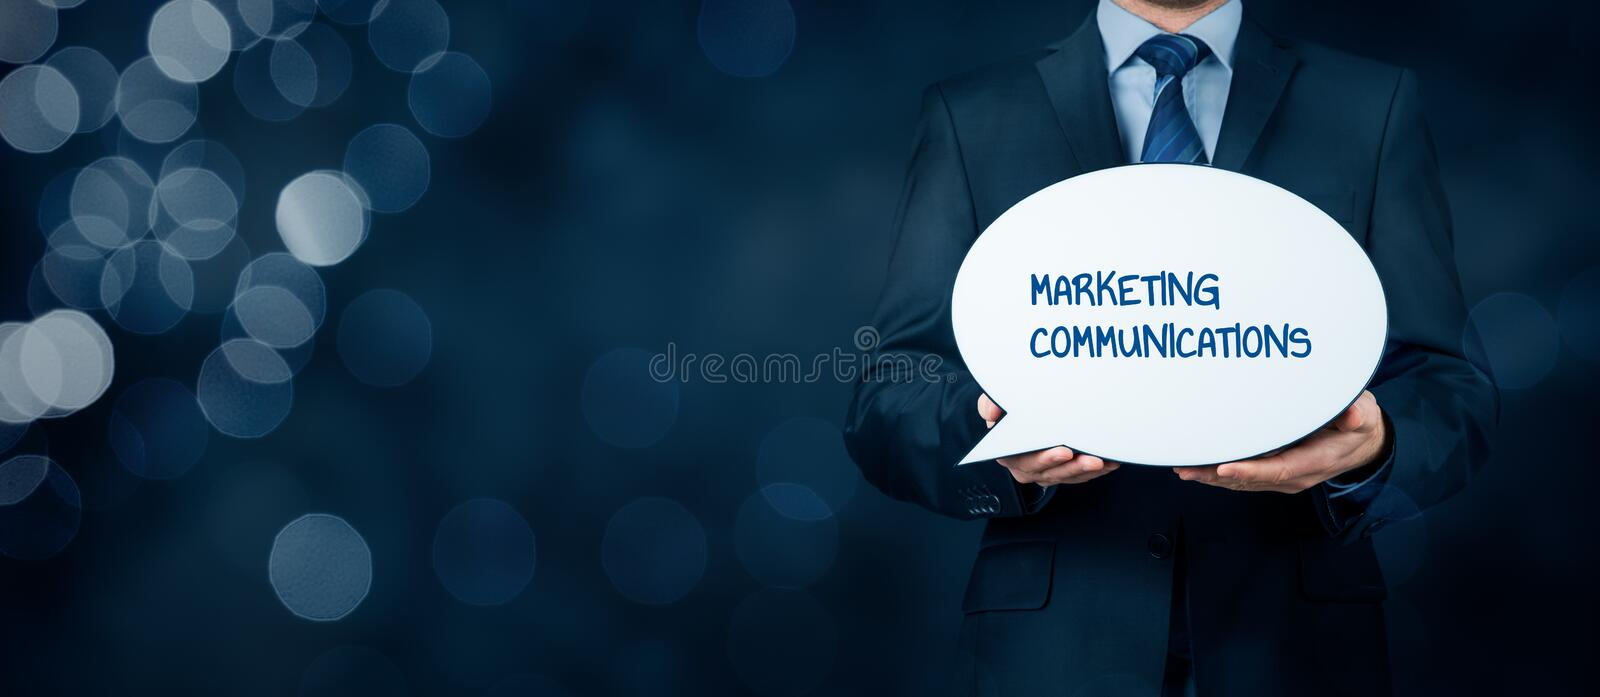 Marketing communications concept stock image